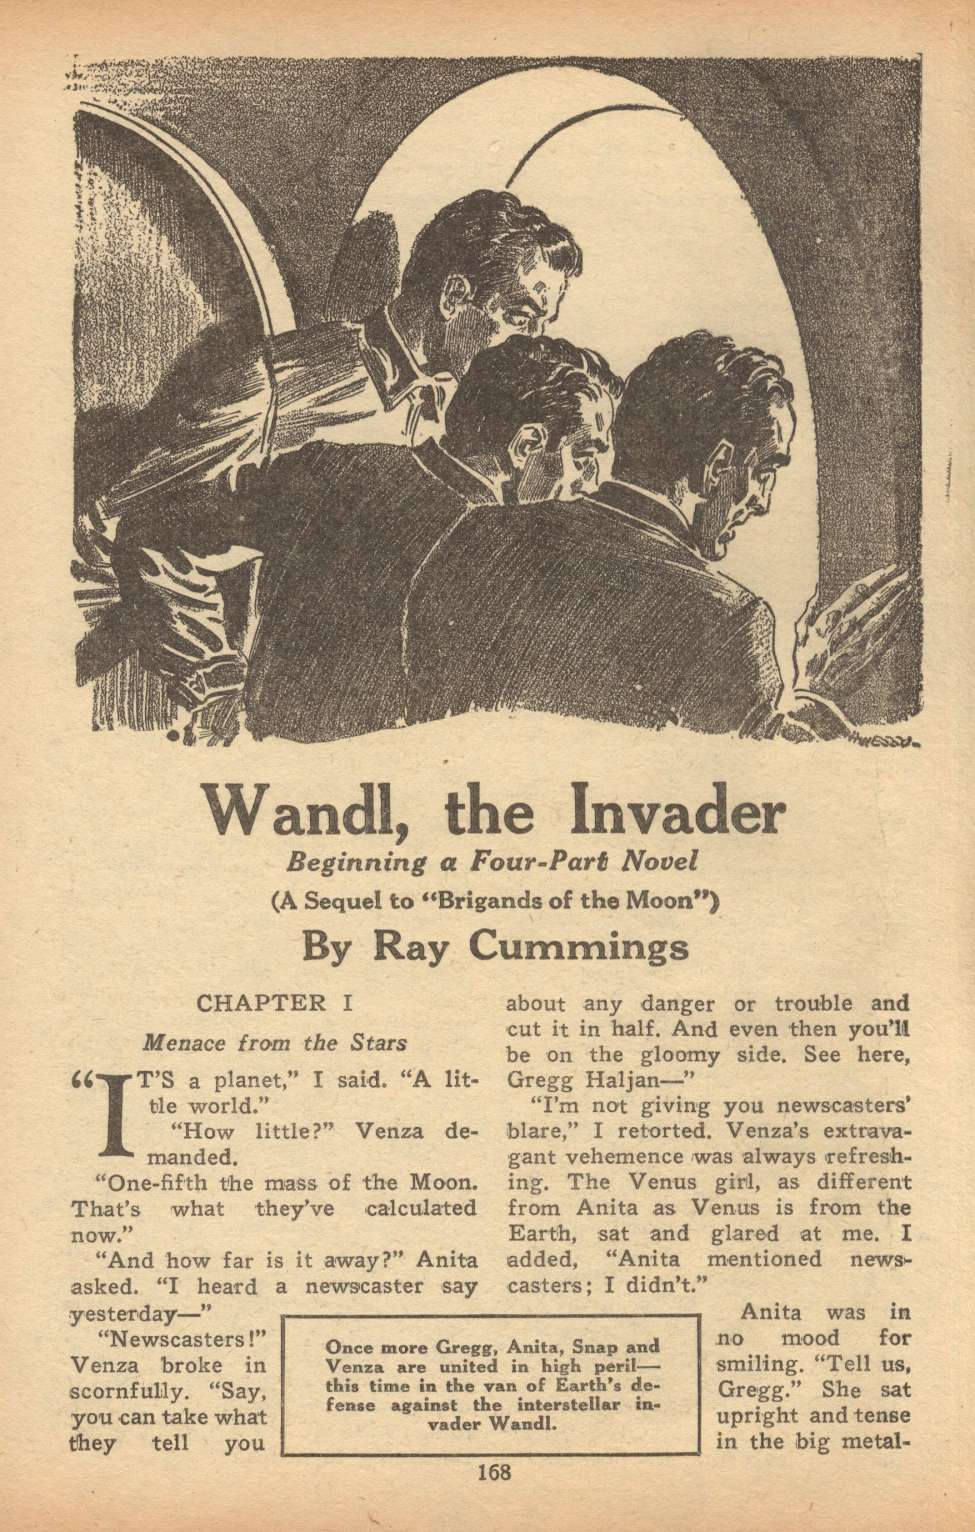 Comic Book Cover For Astounding Serial - Wandl, the Invader - R Cummings